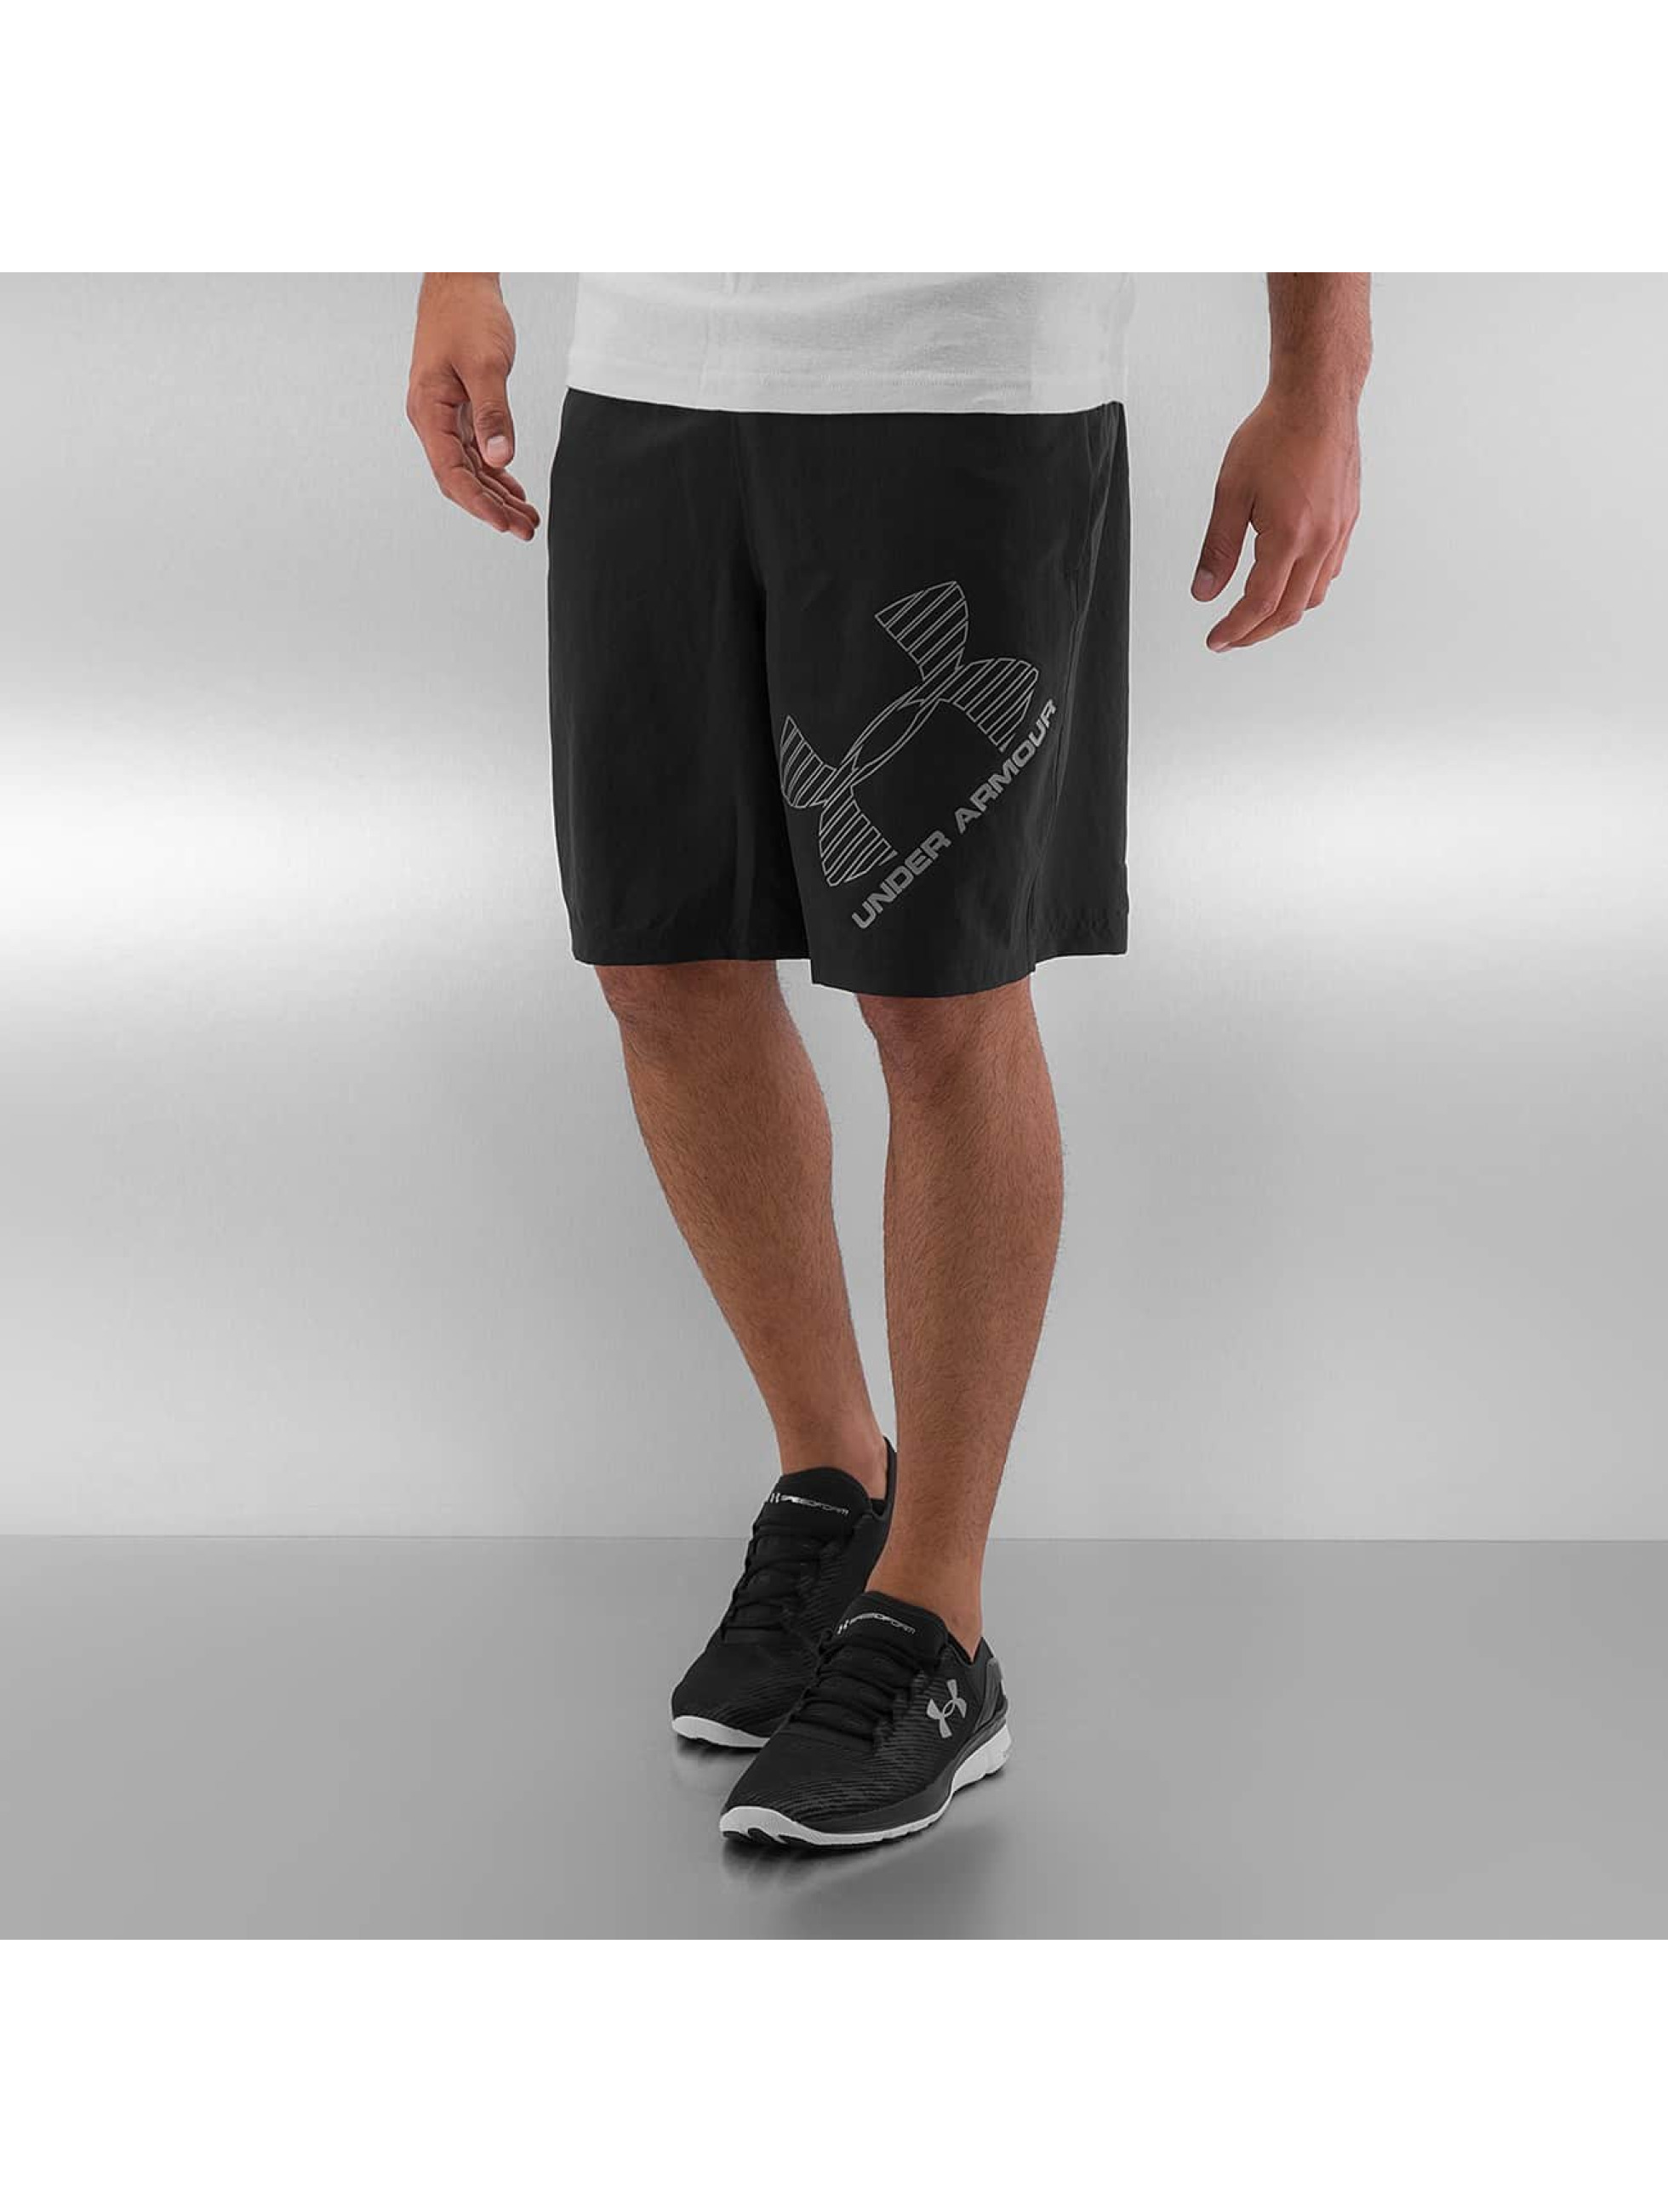 Under Armour Short Heatgear Woven Graphic noir